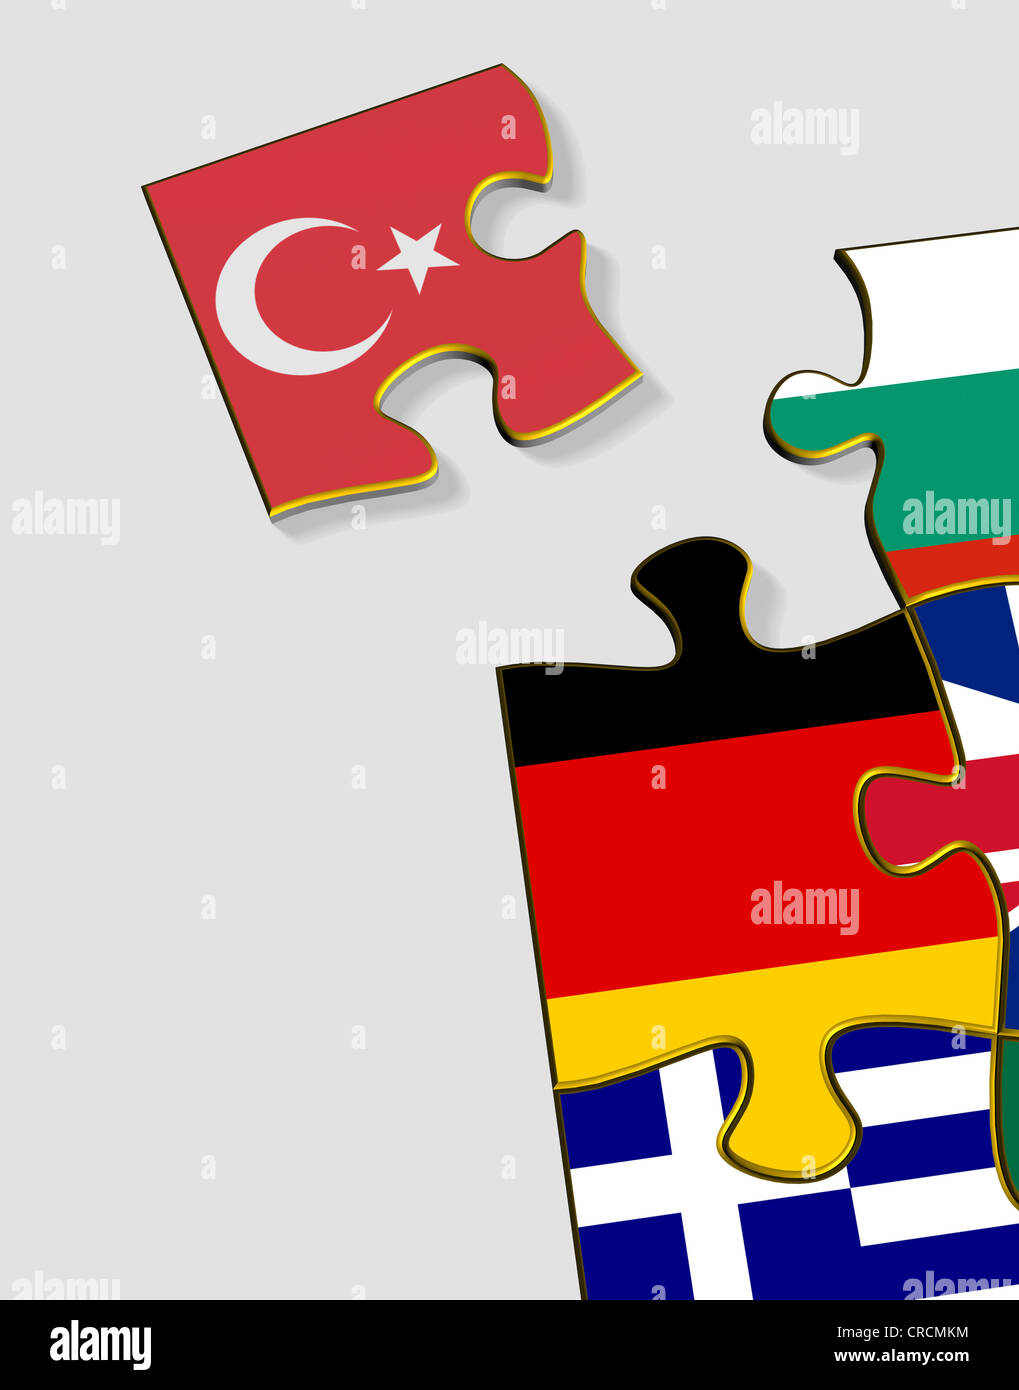 Uncategorized Turkey Puzzle jigsaw puzzle pieces with national flags illustration symbolic image for the eu accession candidate turkey